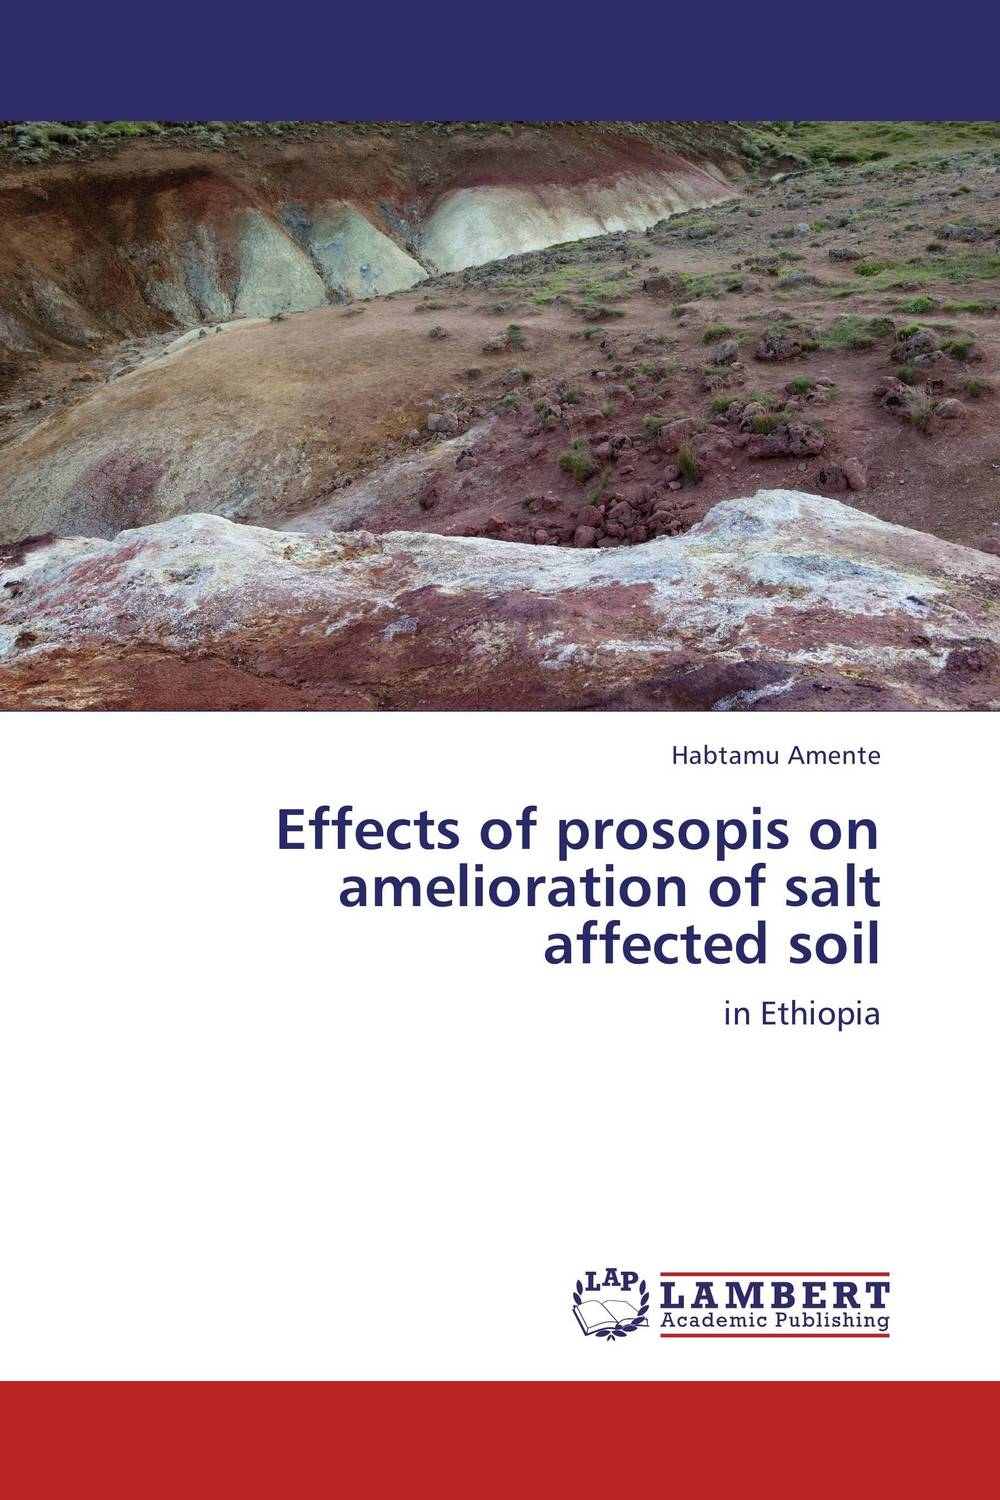 Effects of prosopis on amelioration of salt affected soil